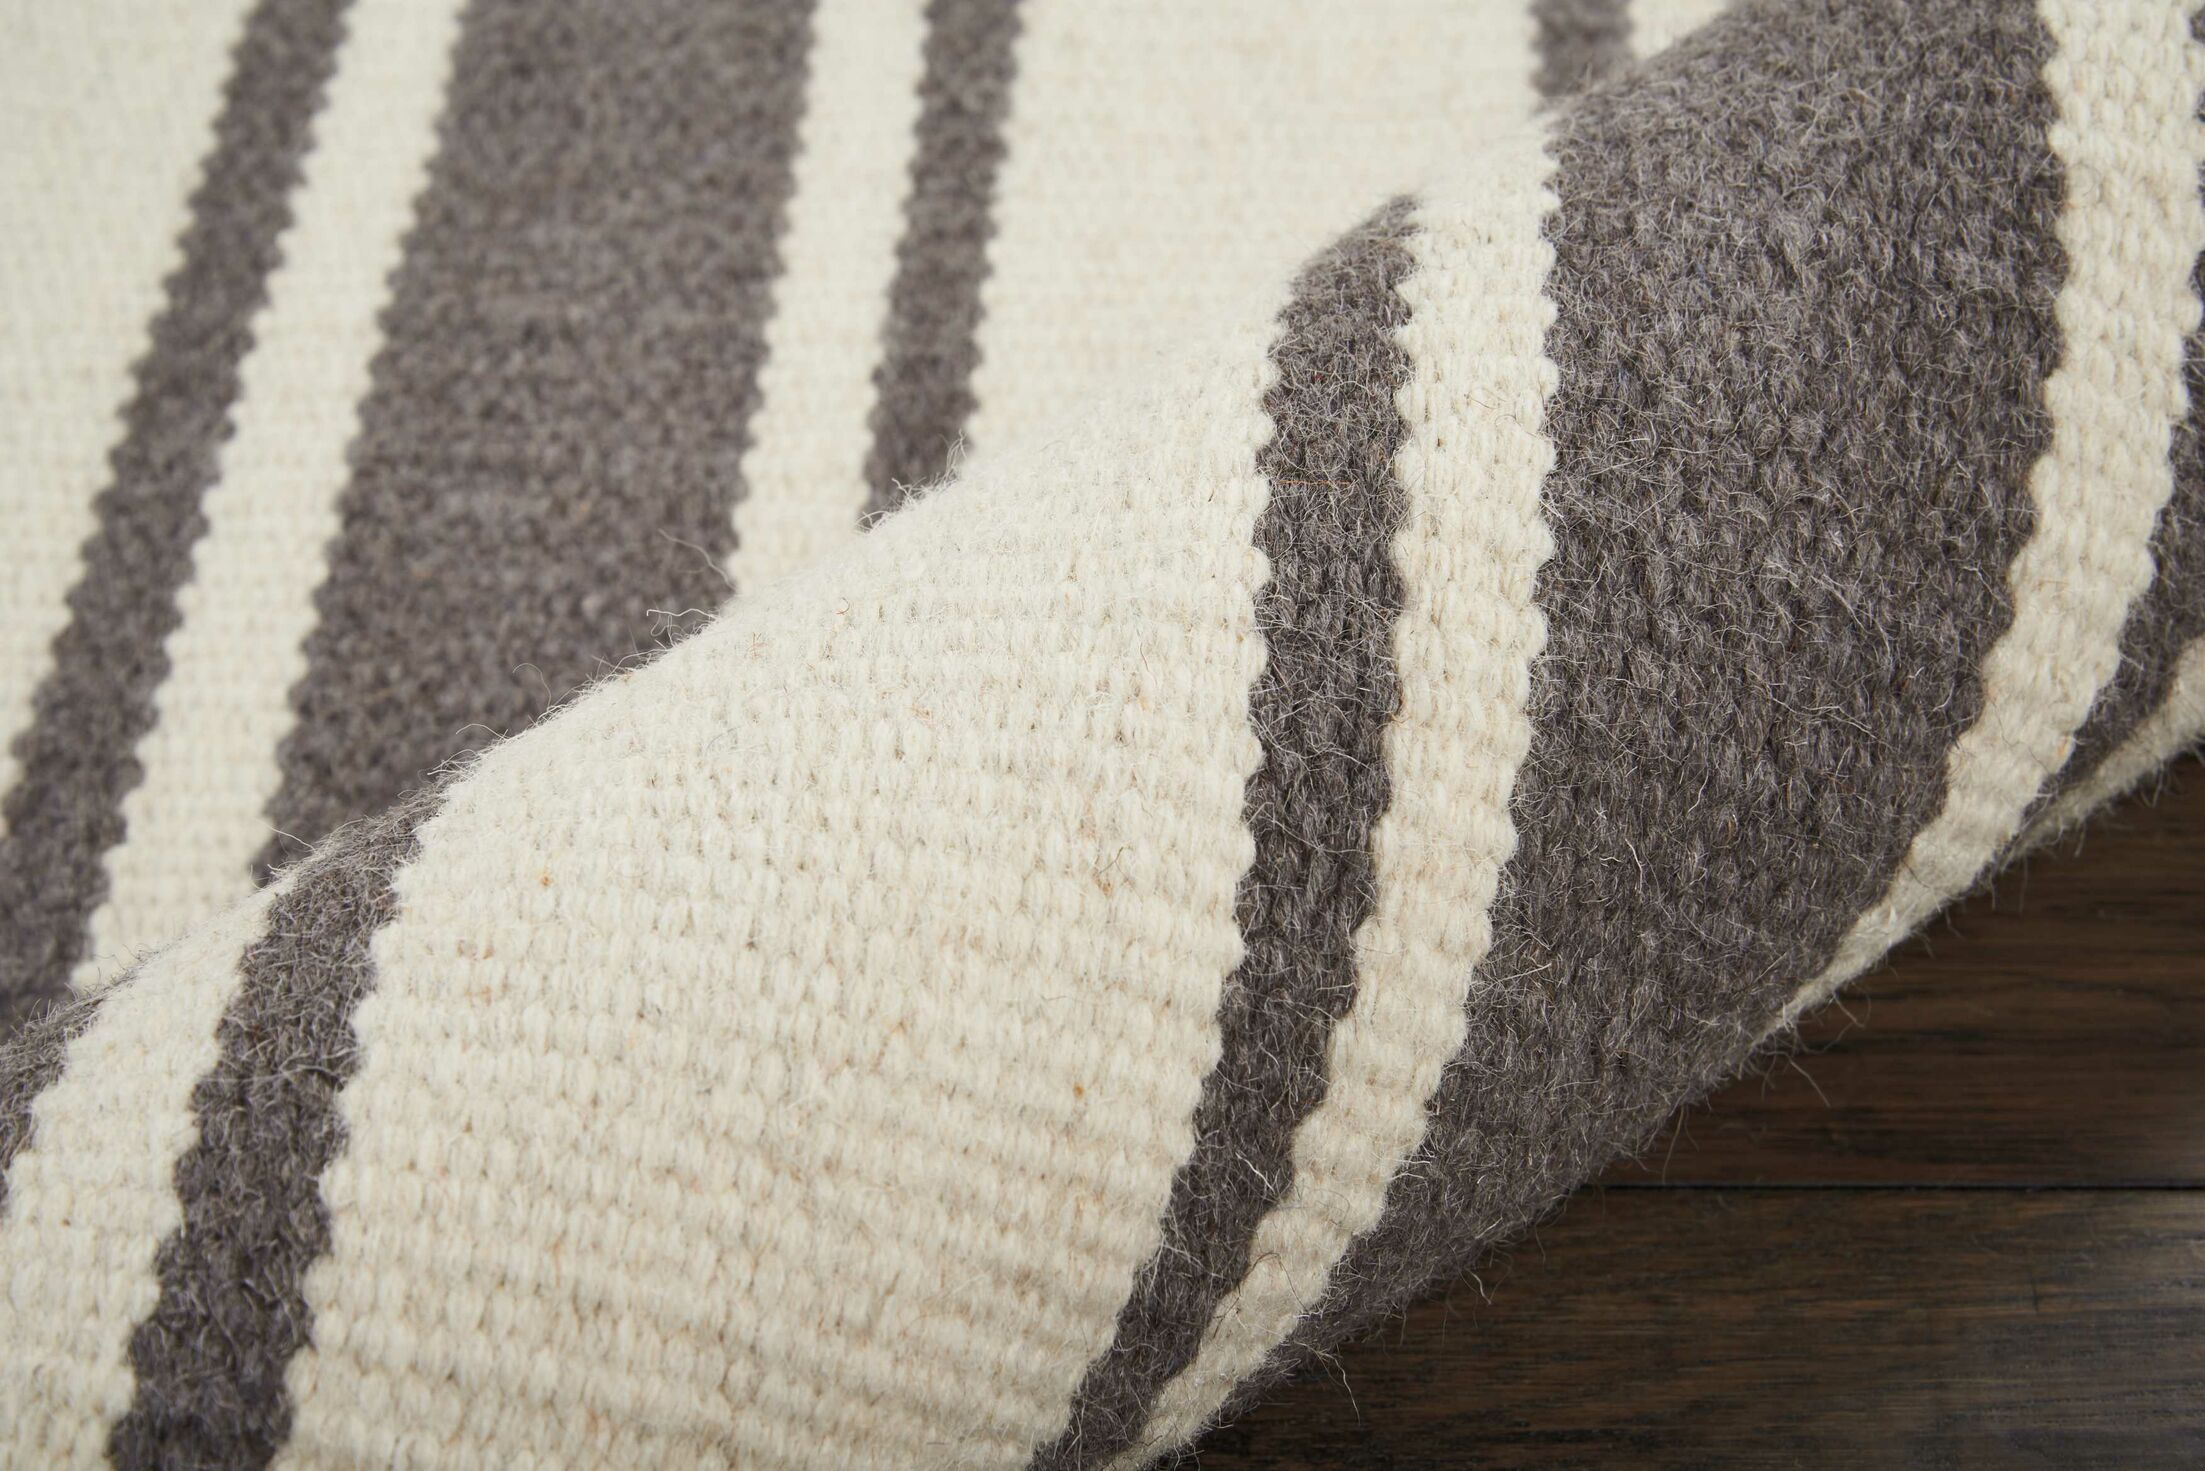 Baird Hand-Woven Ivory/Gray Area Rug Rug Size: Rectangle 5' x 7'6